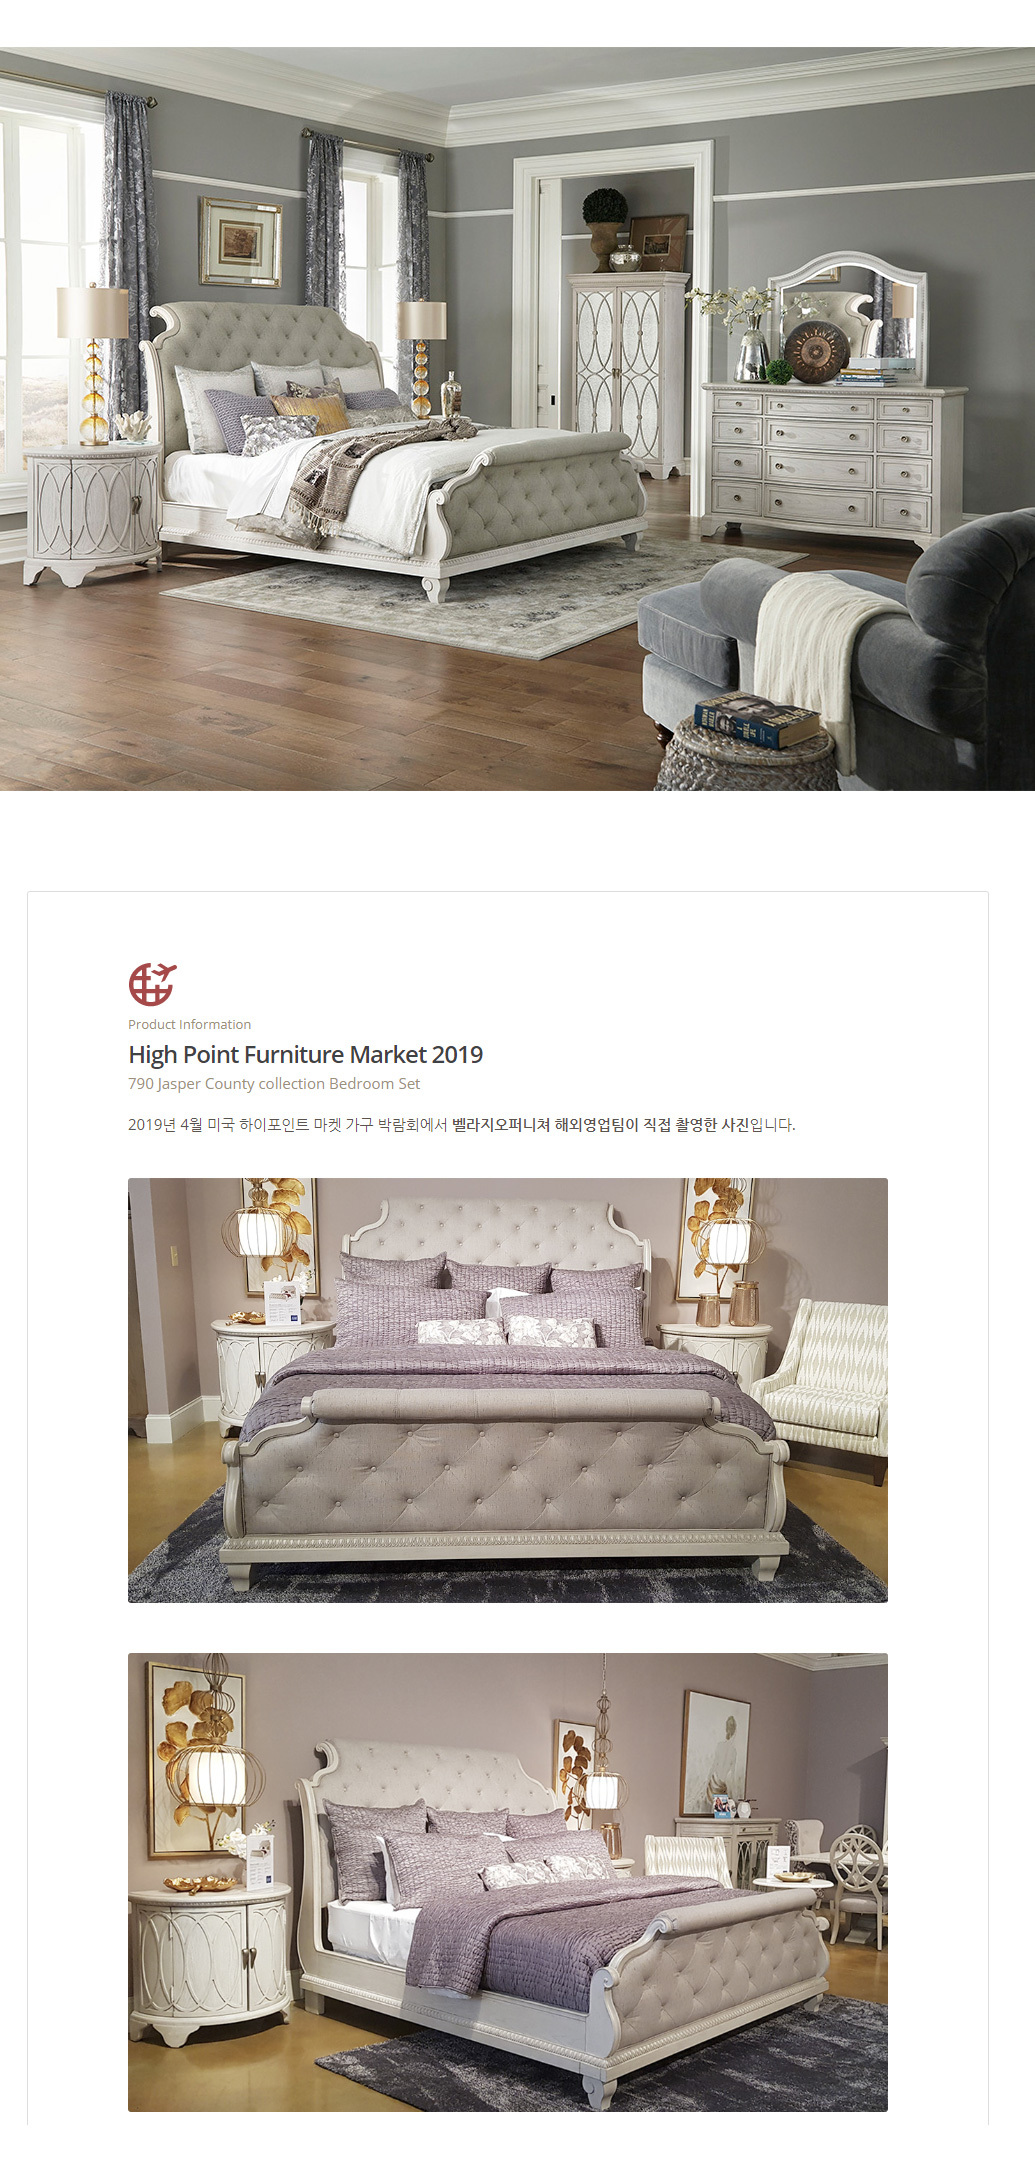 790_jasper_county_collection_bed_02.jpg